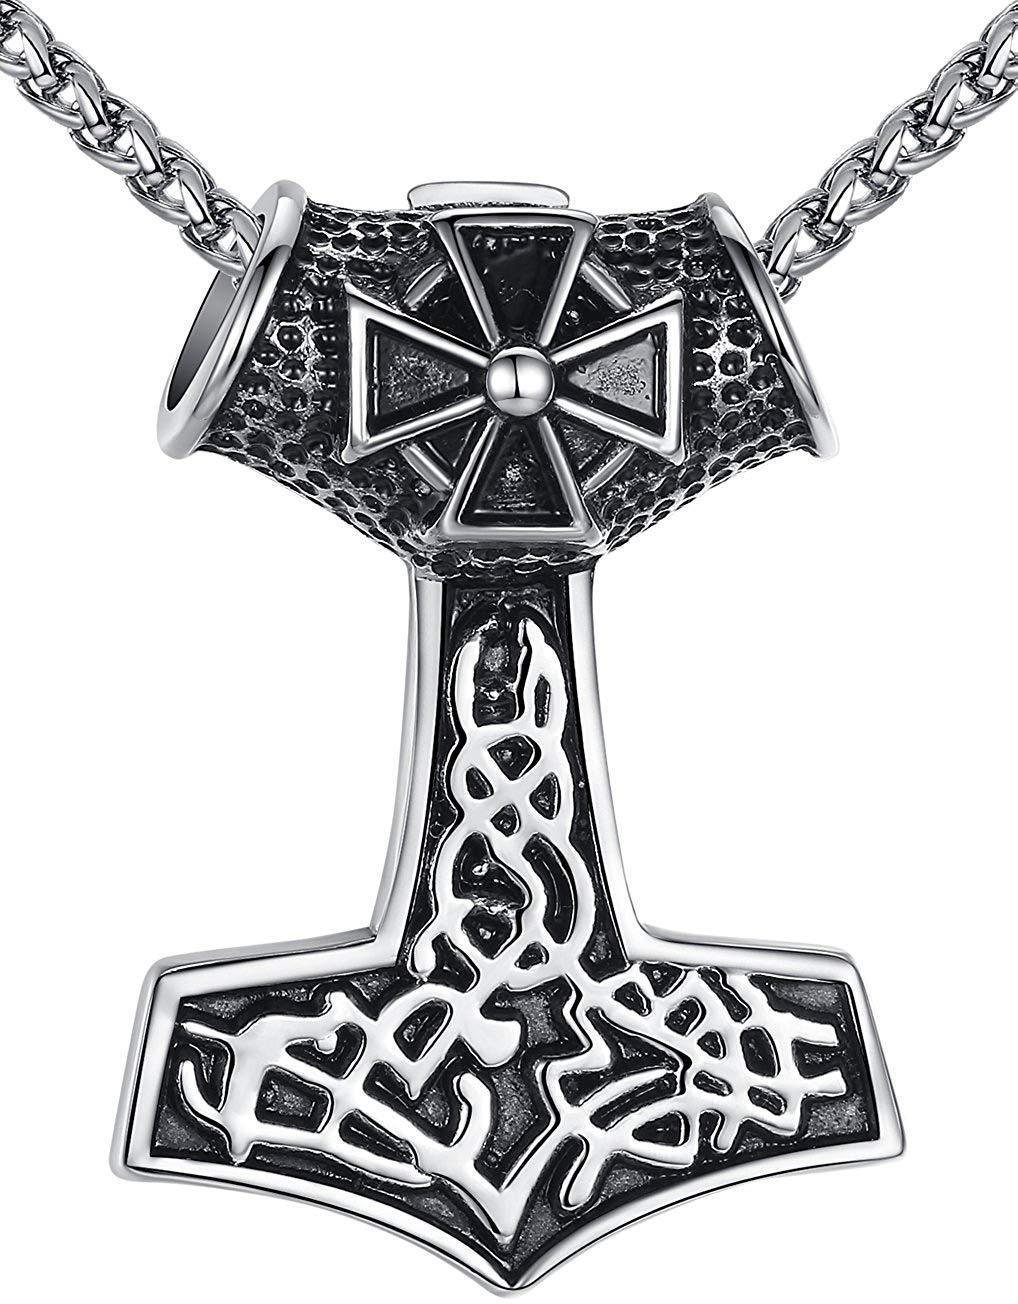 "Aoiy Men's Stainless Steel Viking Thor's Hammer and Cross Pendant Necklace, 24"" Link Chain, aap140"